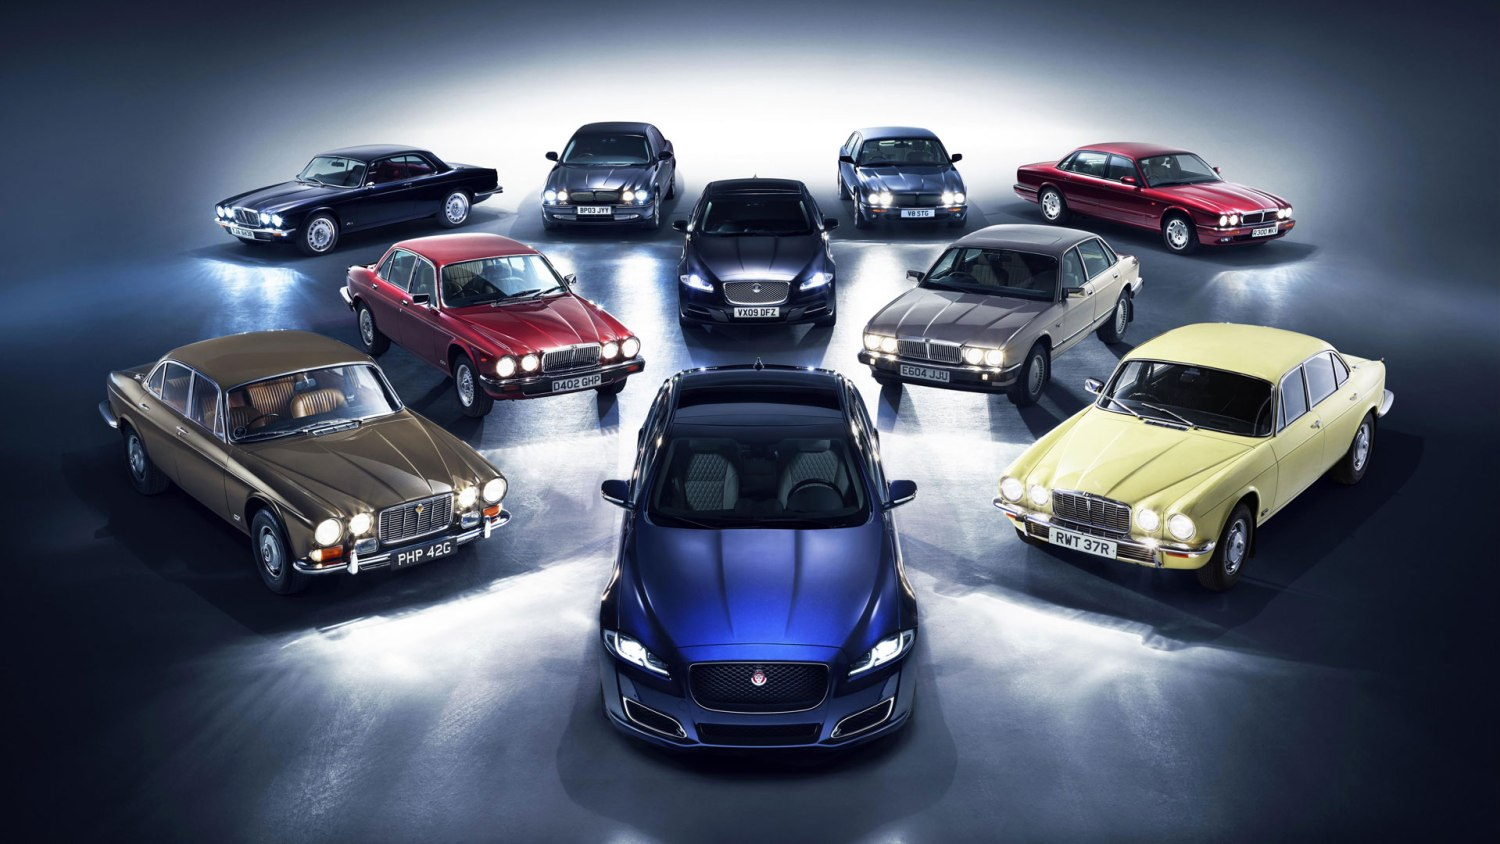 Big cat diary: the 51-year story of the Jaguar XJ